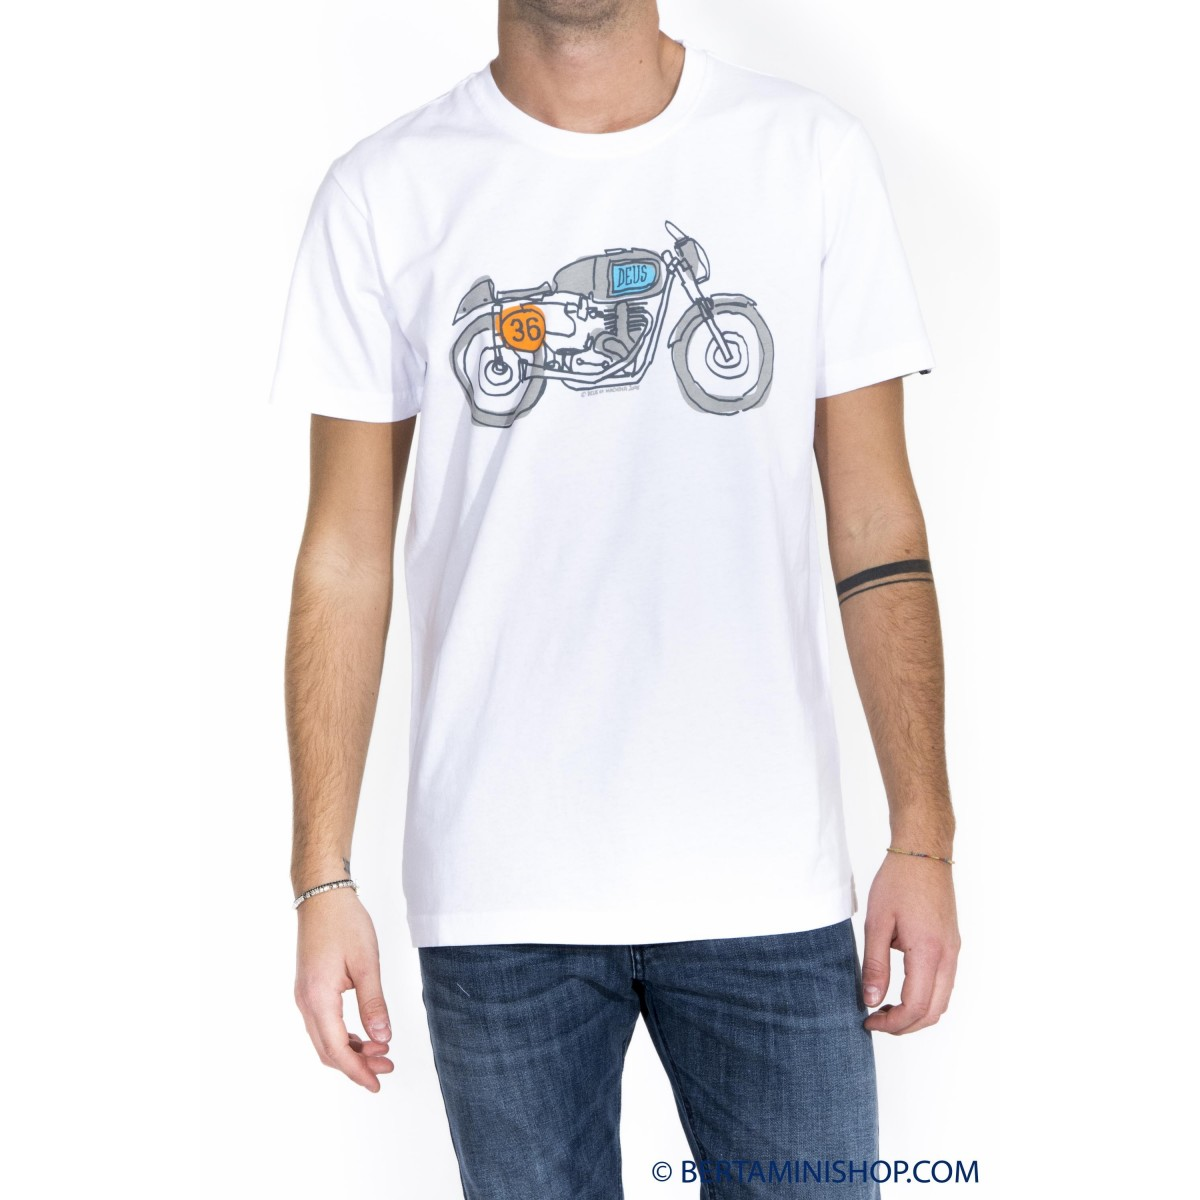 T-shirt uomo Deus ex machina - Dmw41808g icons